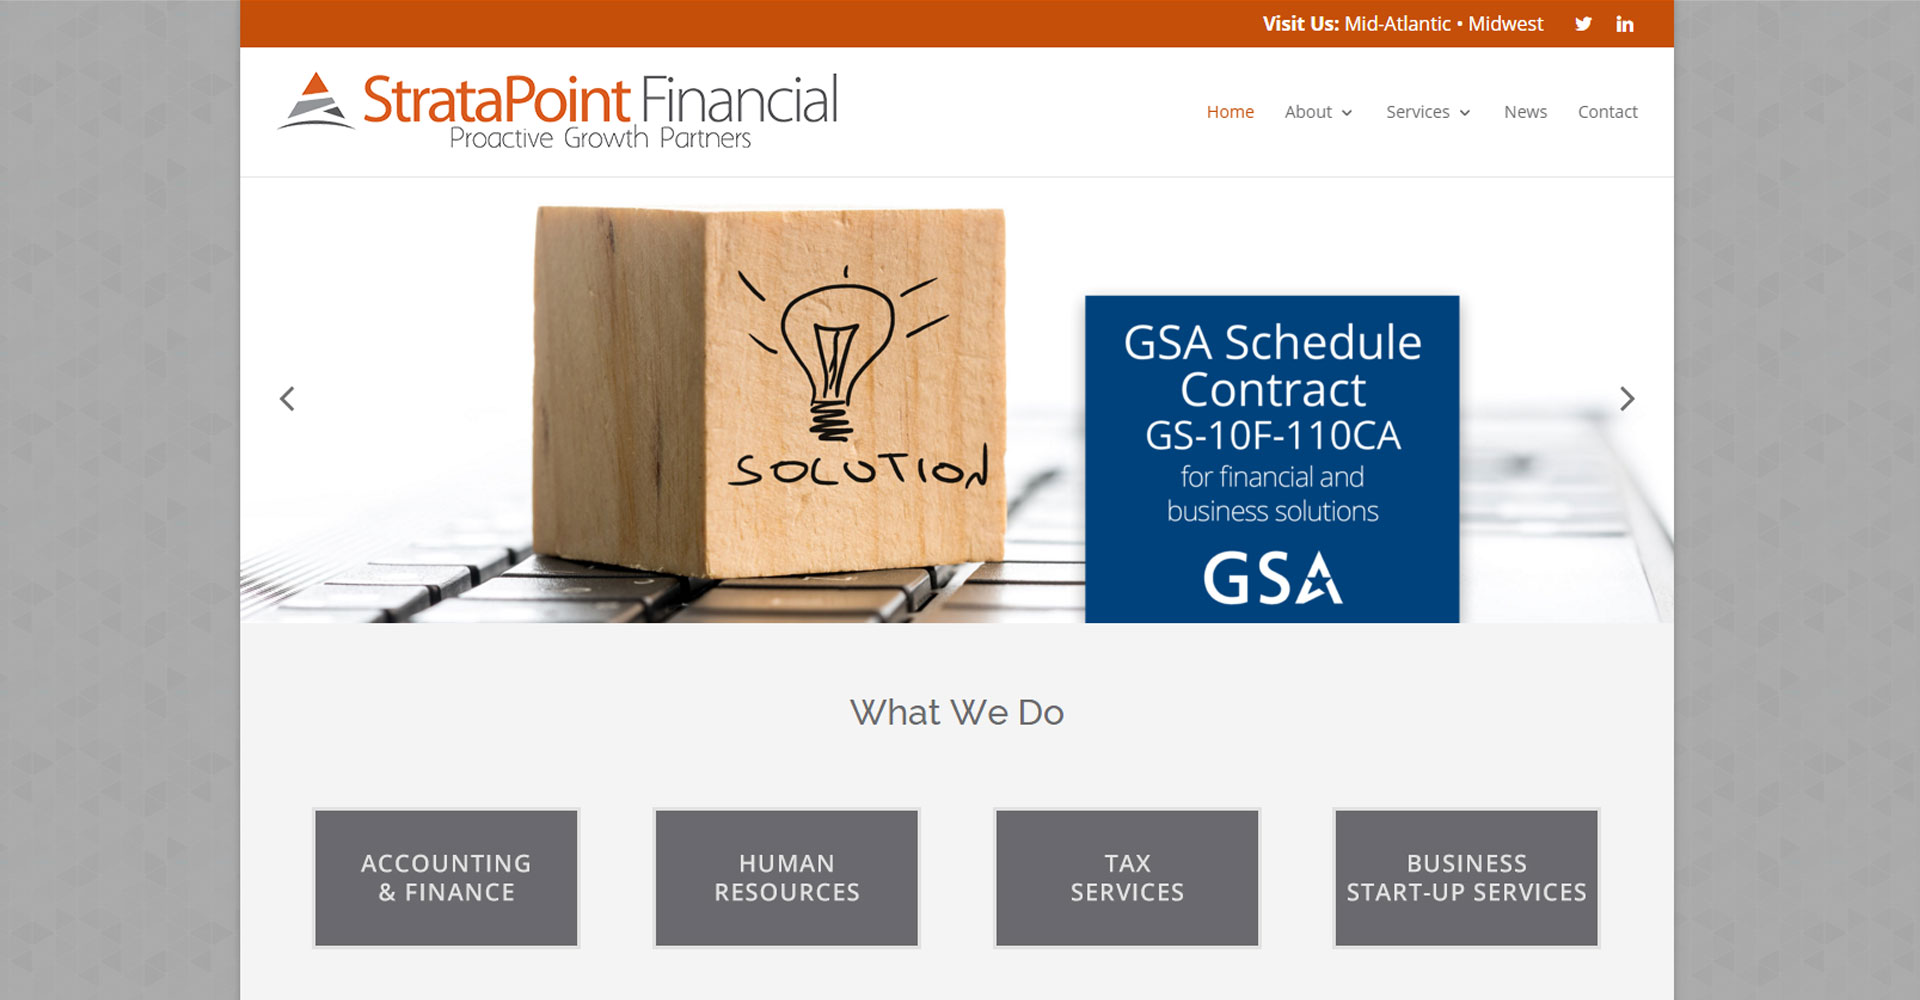 StrataPoint Financial - Zoda Design